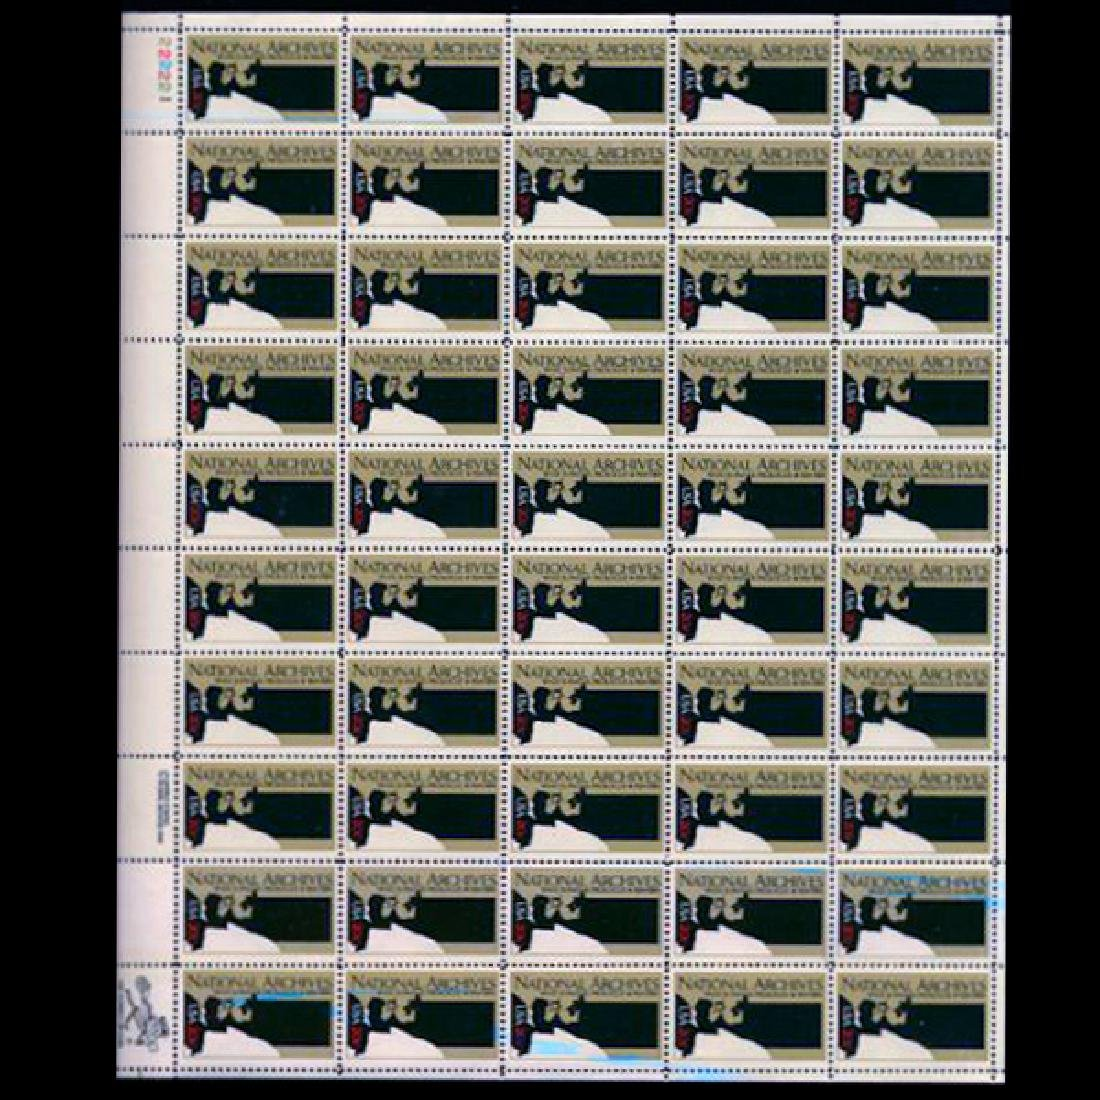 1984 US Sheet 20c National Archives Stamps MNH Errors